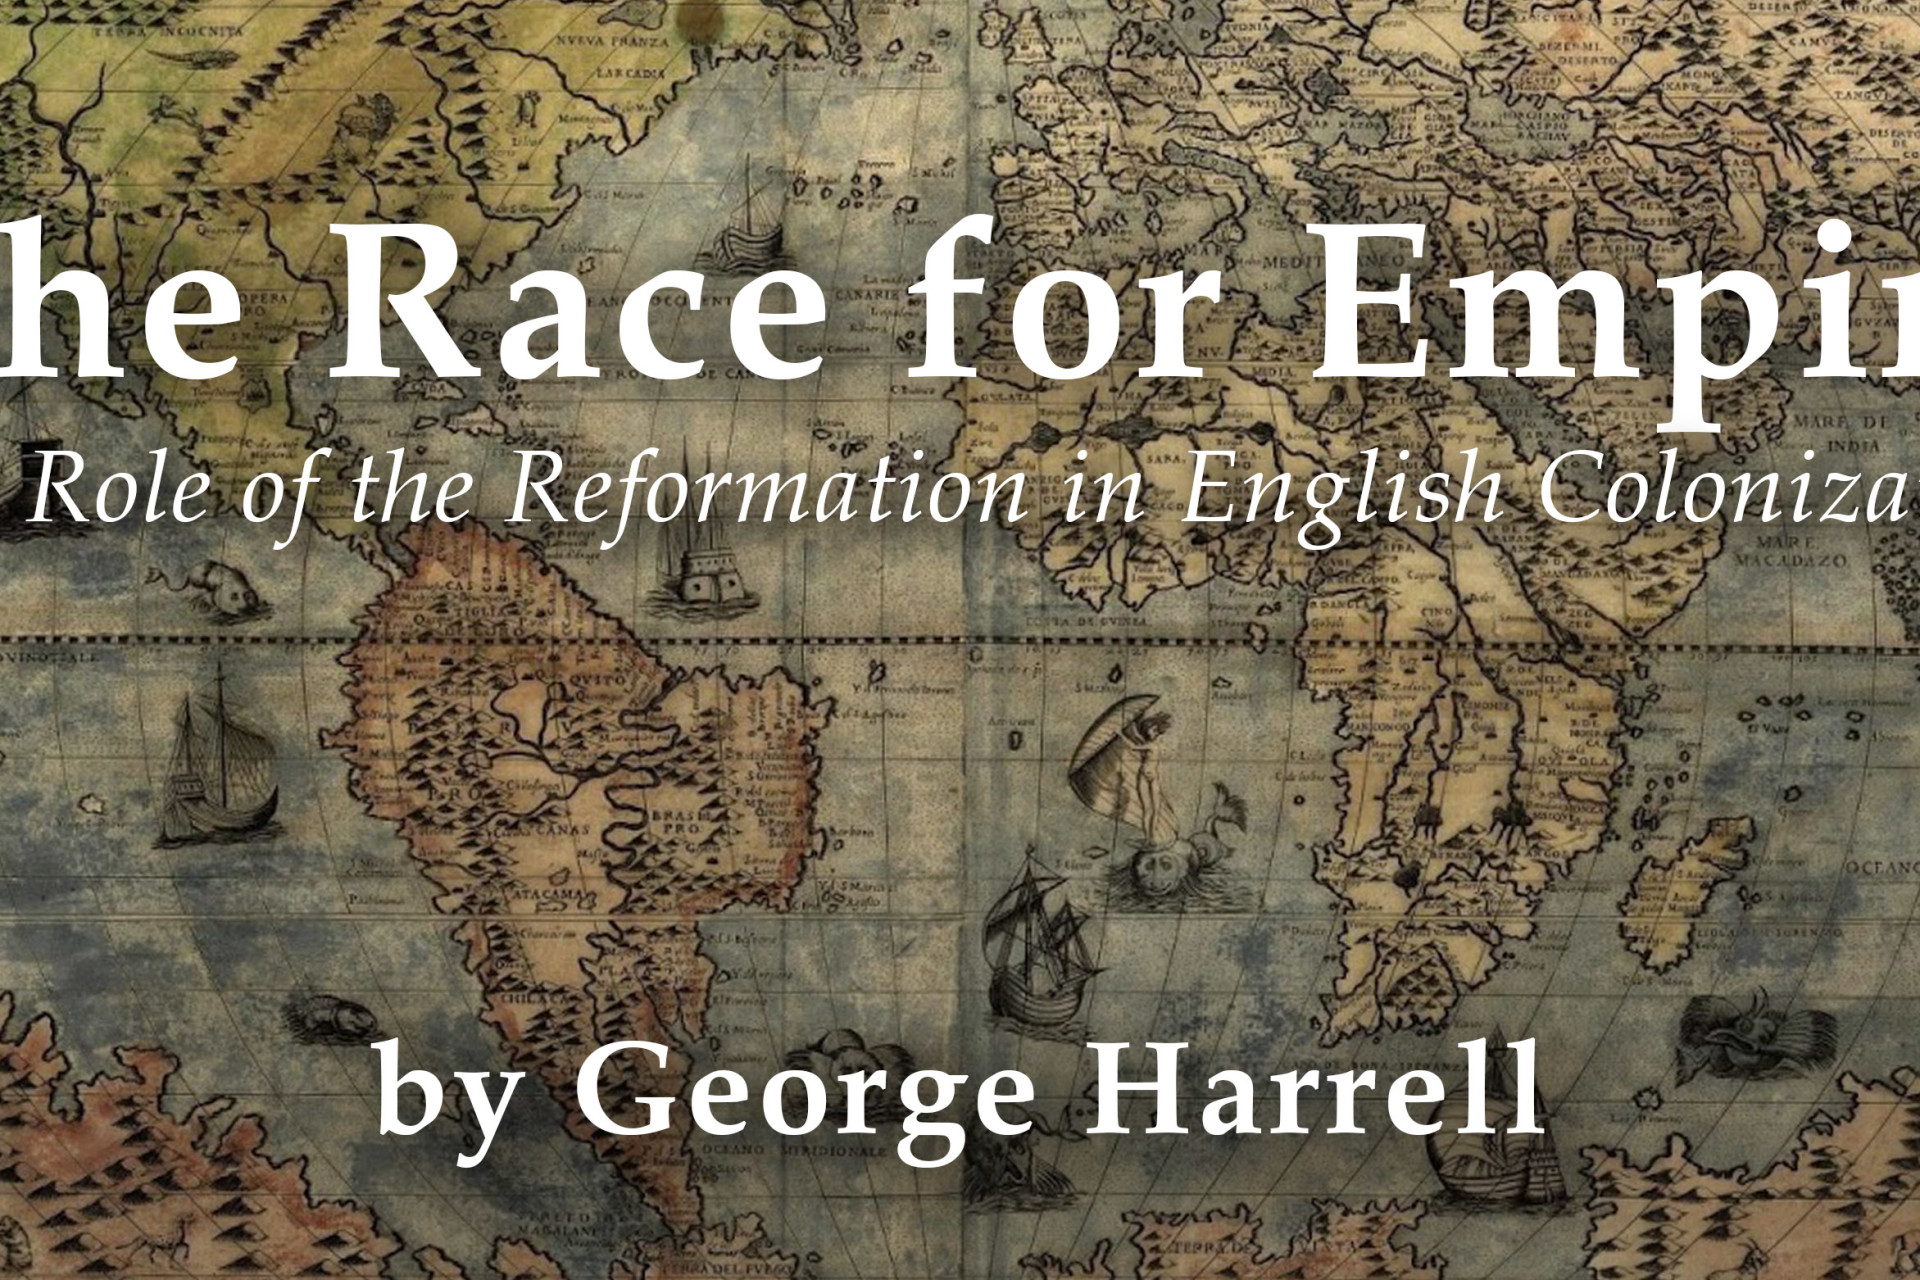 The Race for Empire: The Role of the Reformation in English Colonization